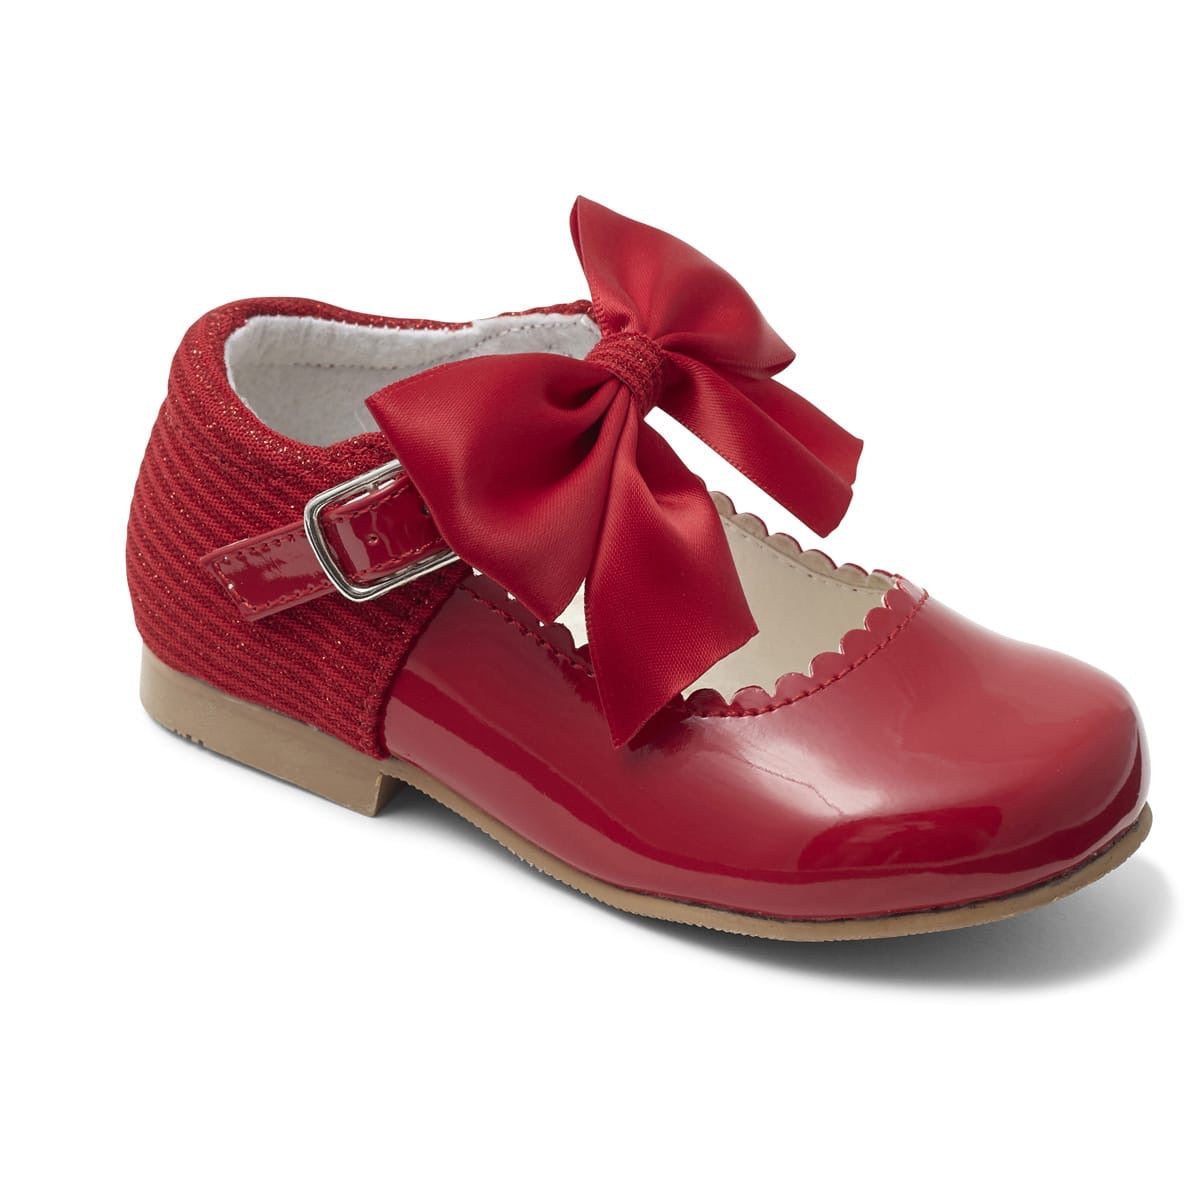 Kristy Red Bow Hard Sole Shoes